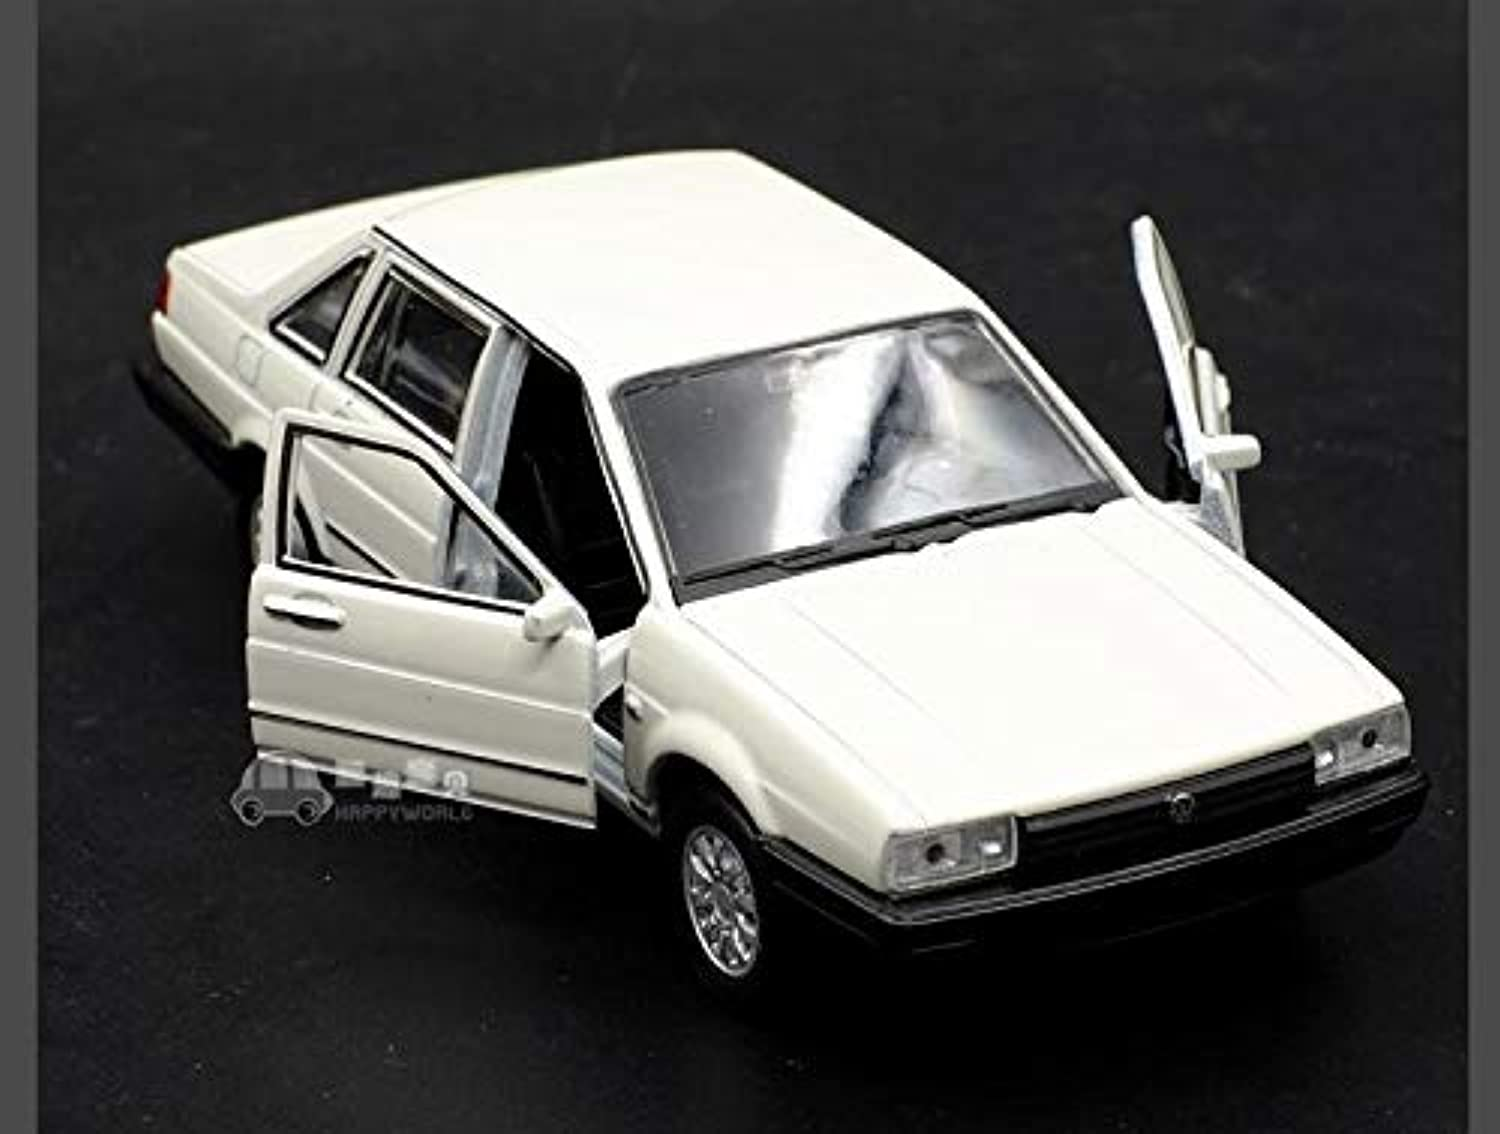 Generic 1pc 1 36 12cm Delicacy Welly Volkswagen Santana VW car Alloy Model Home Collection Decoration boy Toy Gift White